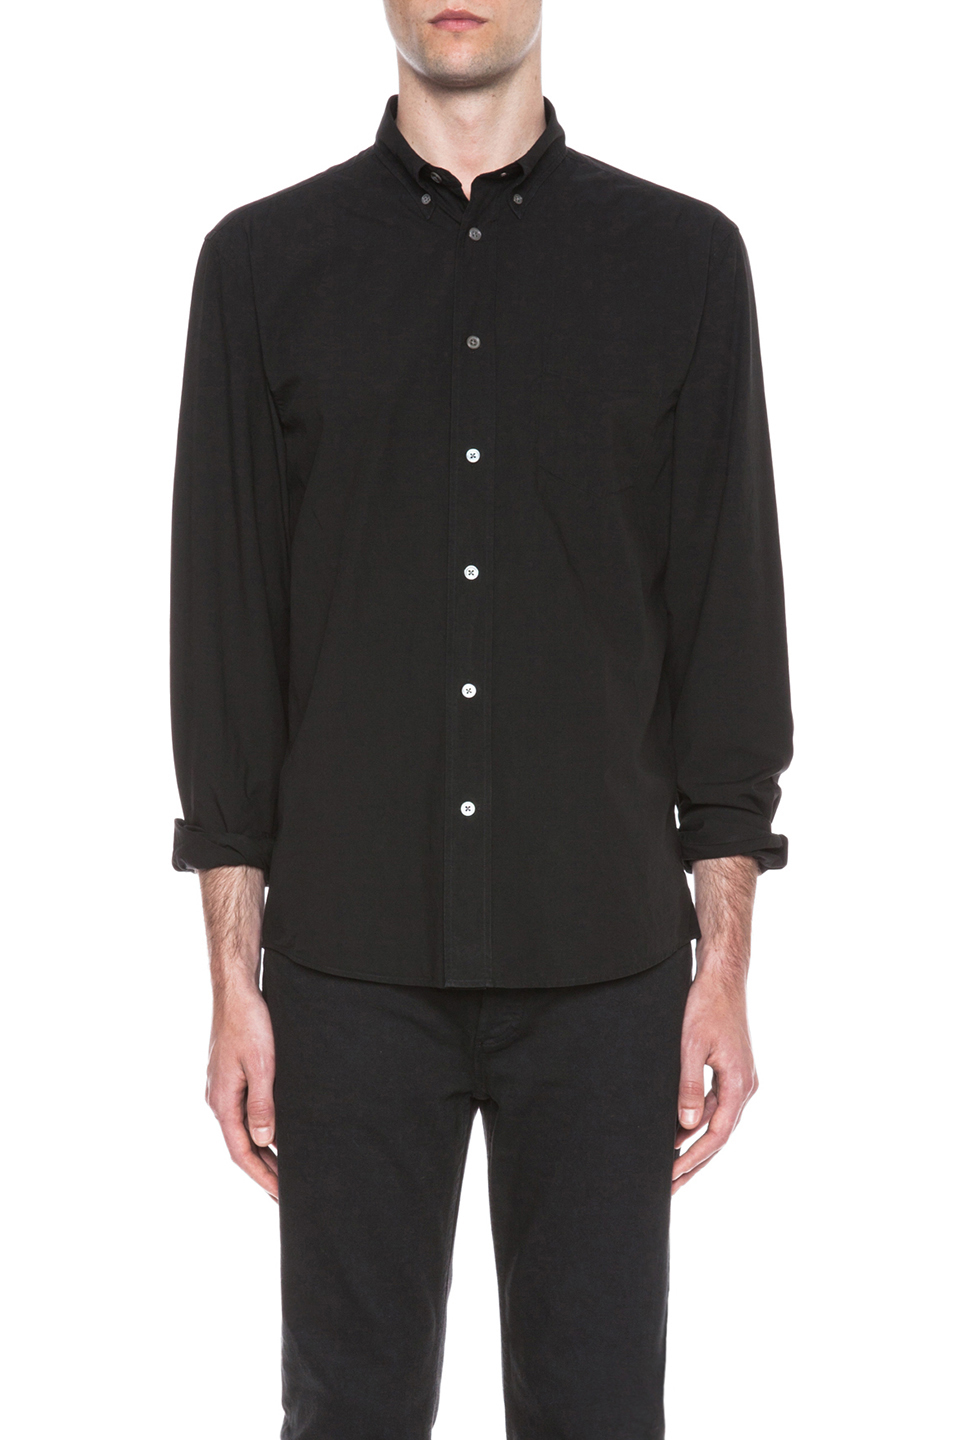 Acne Studios Isherwood Poplin Cotton Button Down in Black